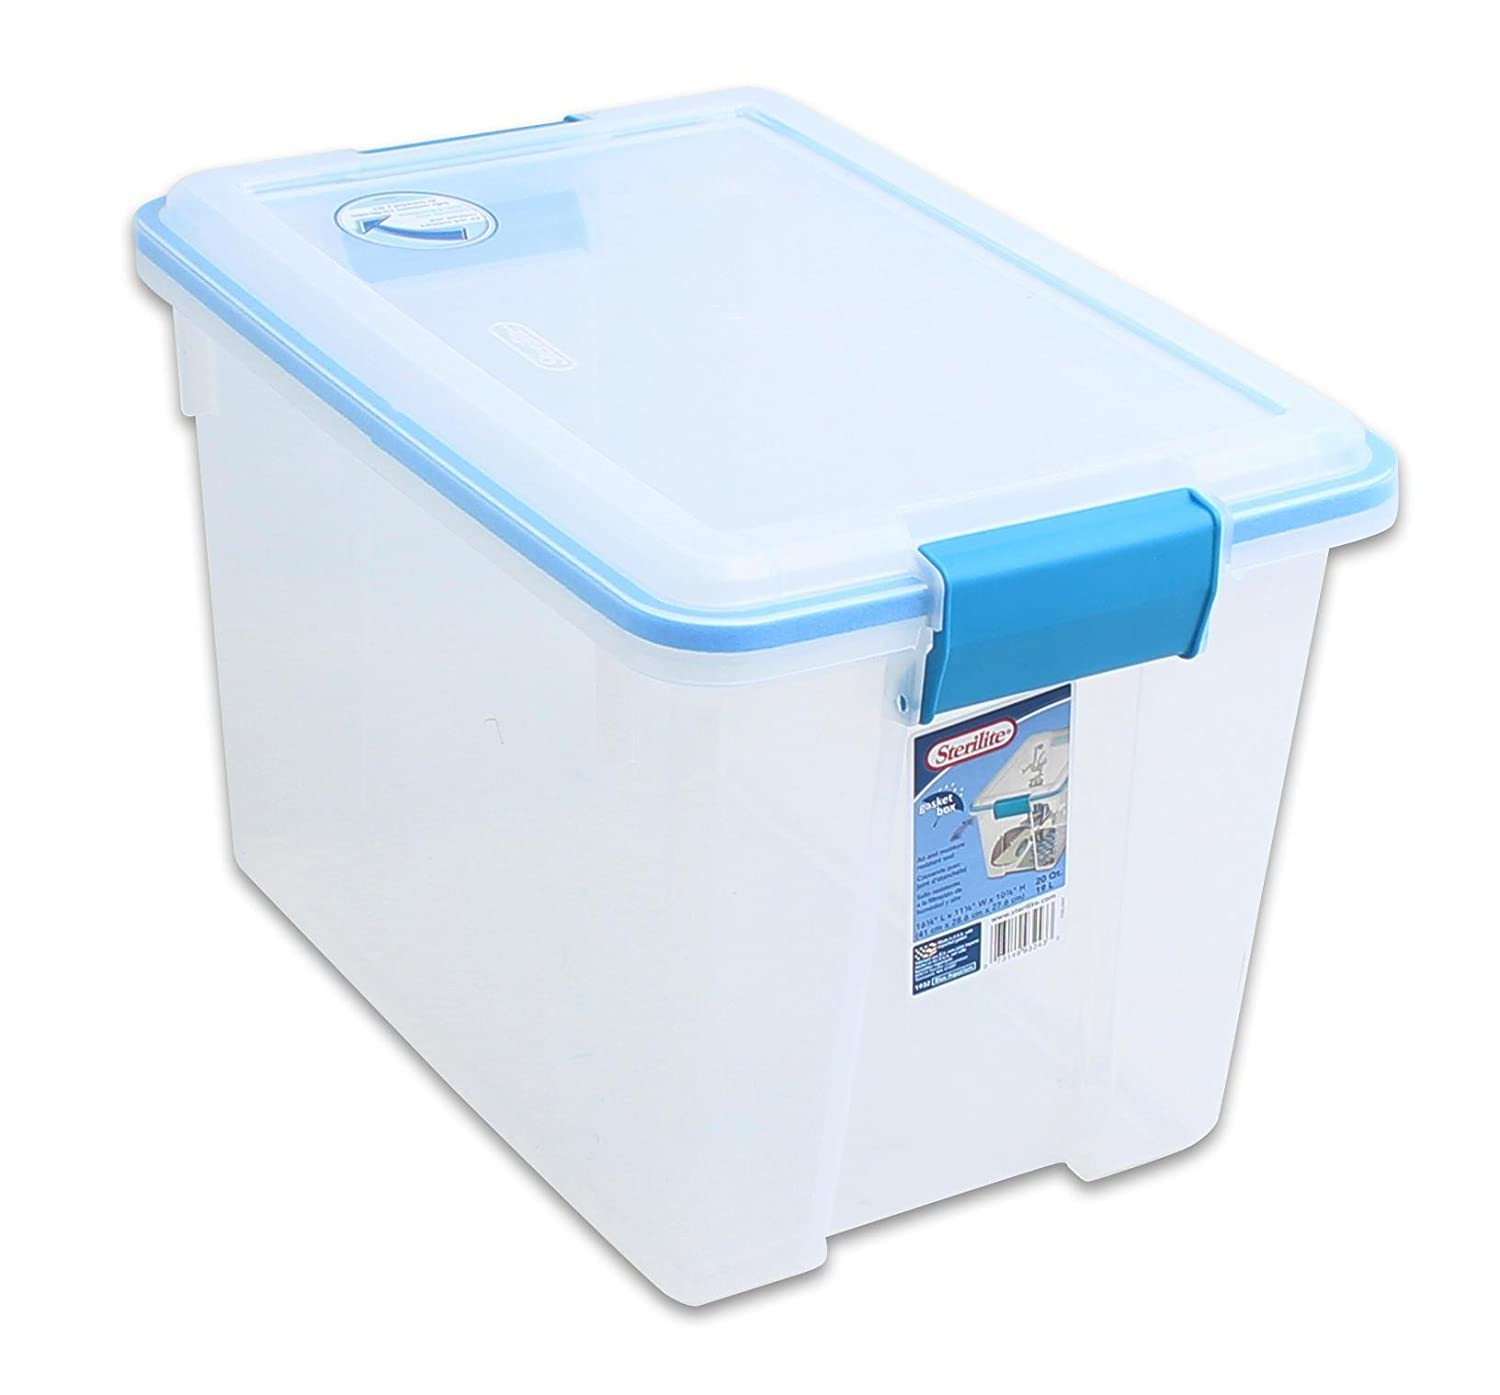 for and innovative home solution sterilite bins distinctive target stackers in plastic ster your tub tubs containers modular storage off walmart show small